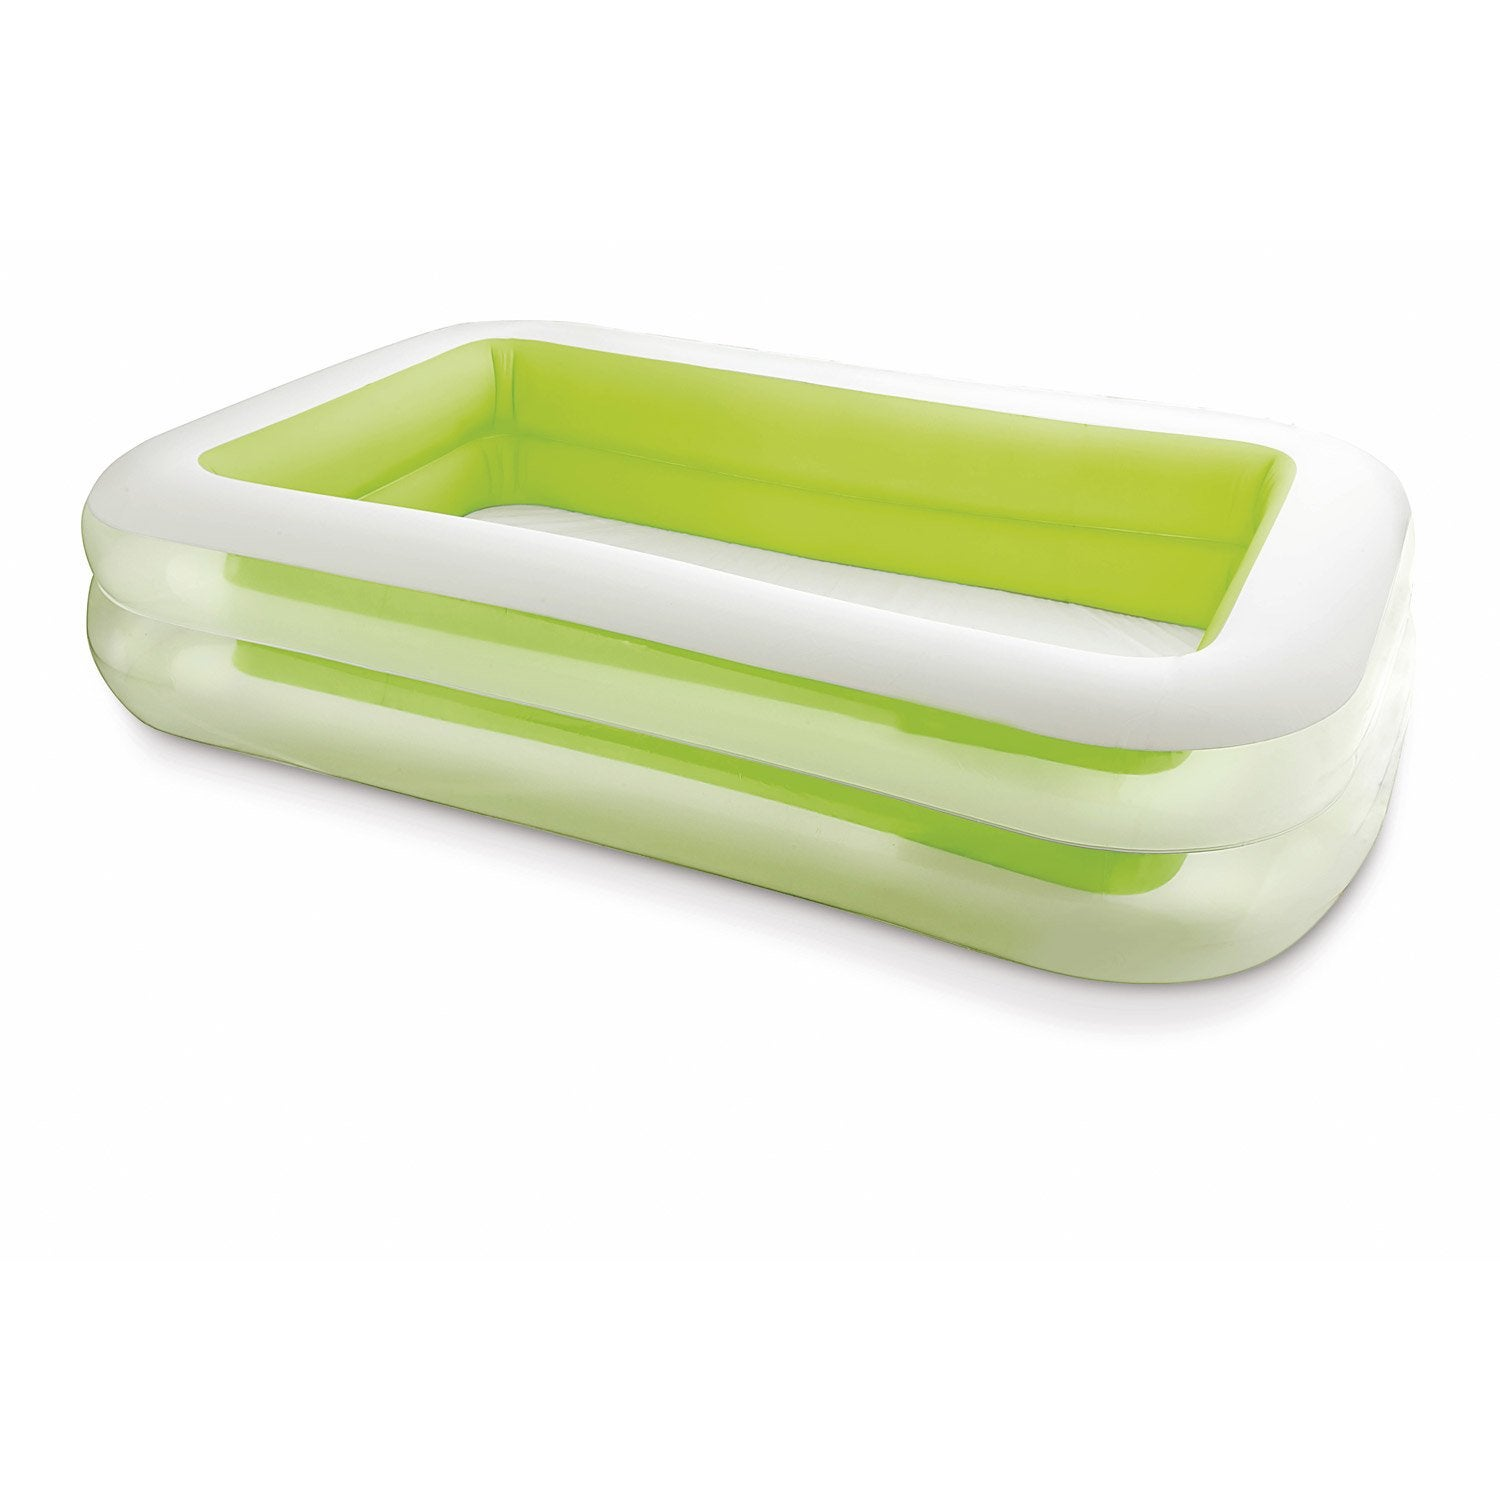 Design piscine gonflable avec toboggan toulouse 22 for Piscine hors sol intex pas cher